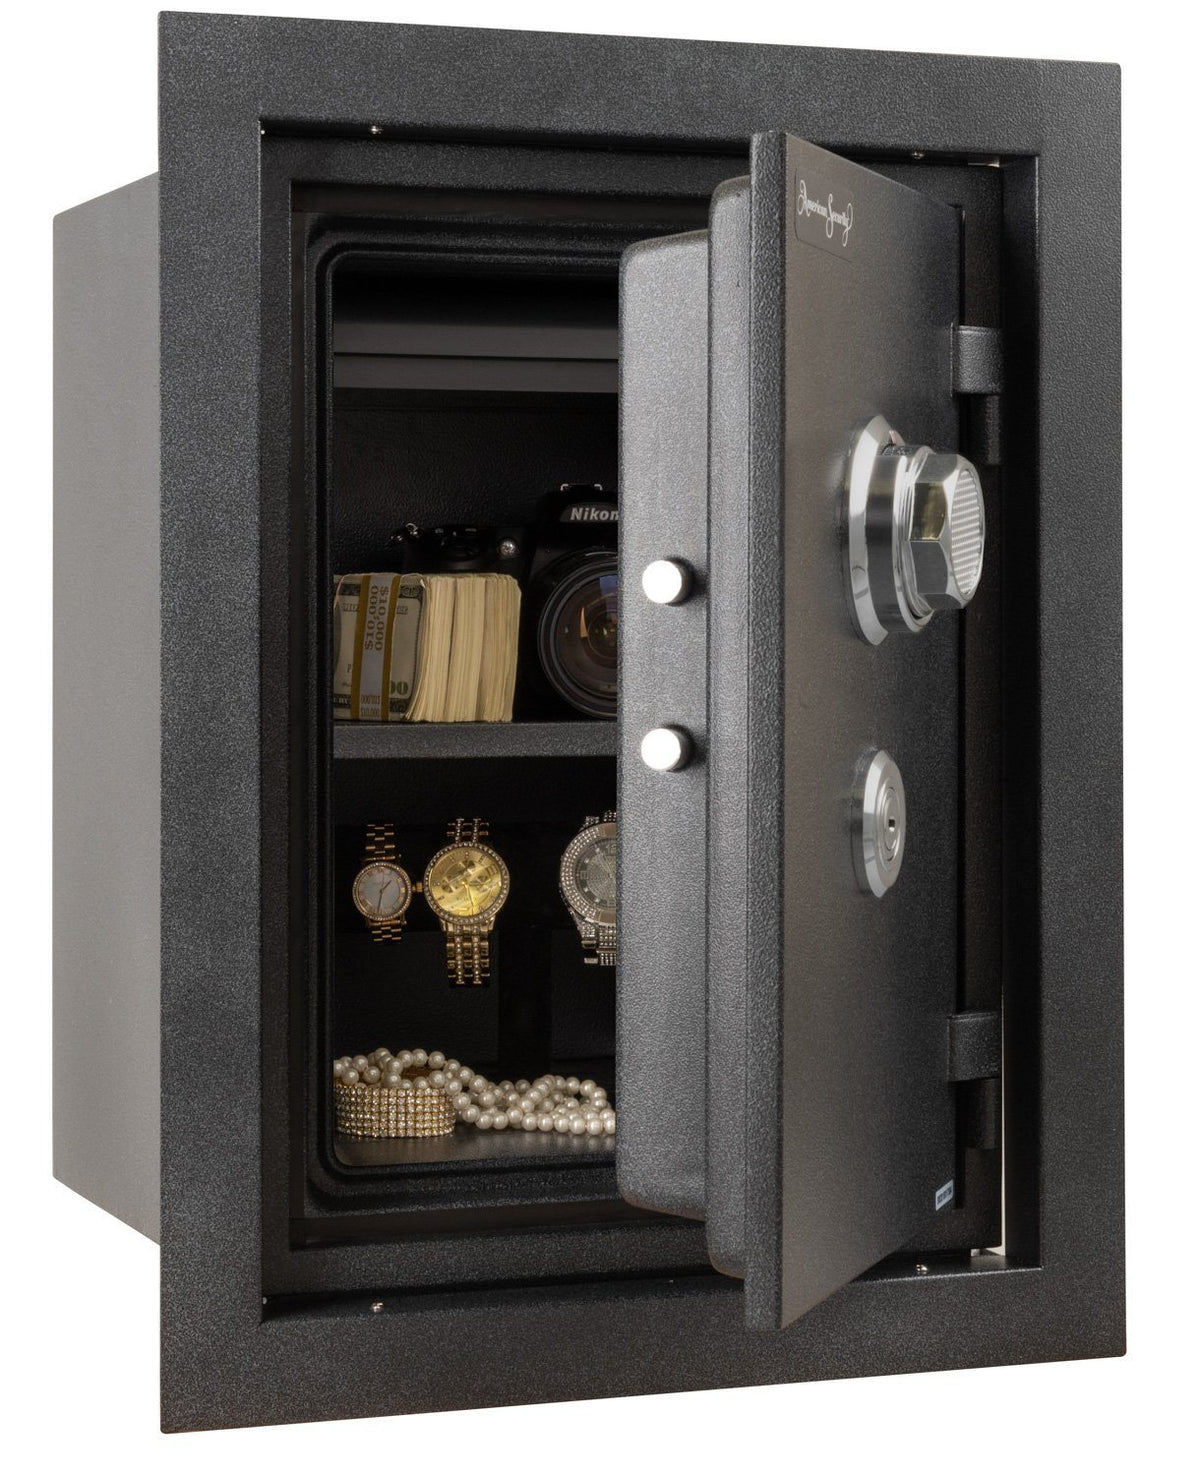 AMSEC WFS149 Fireproof Wall Safe Door Open Full